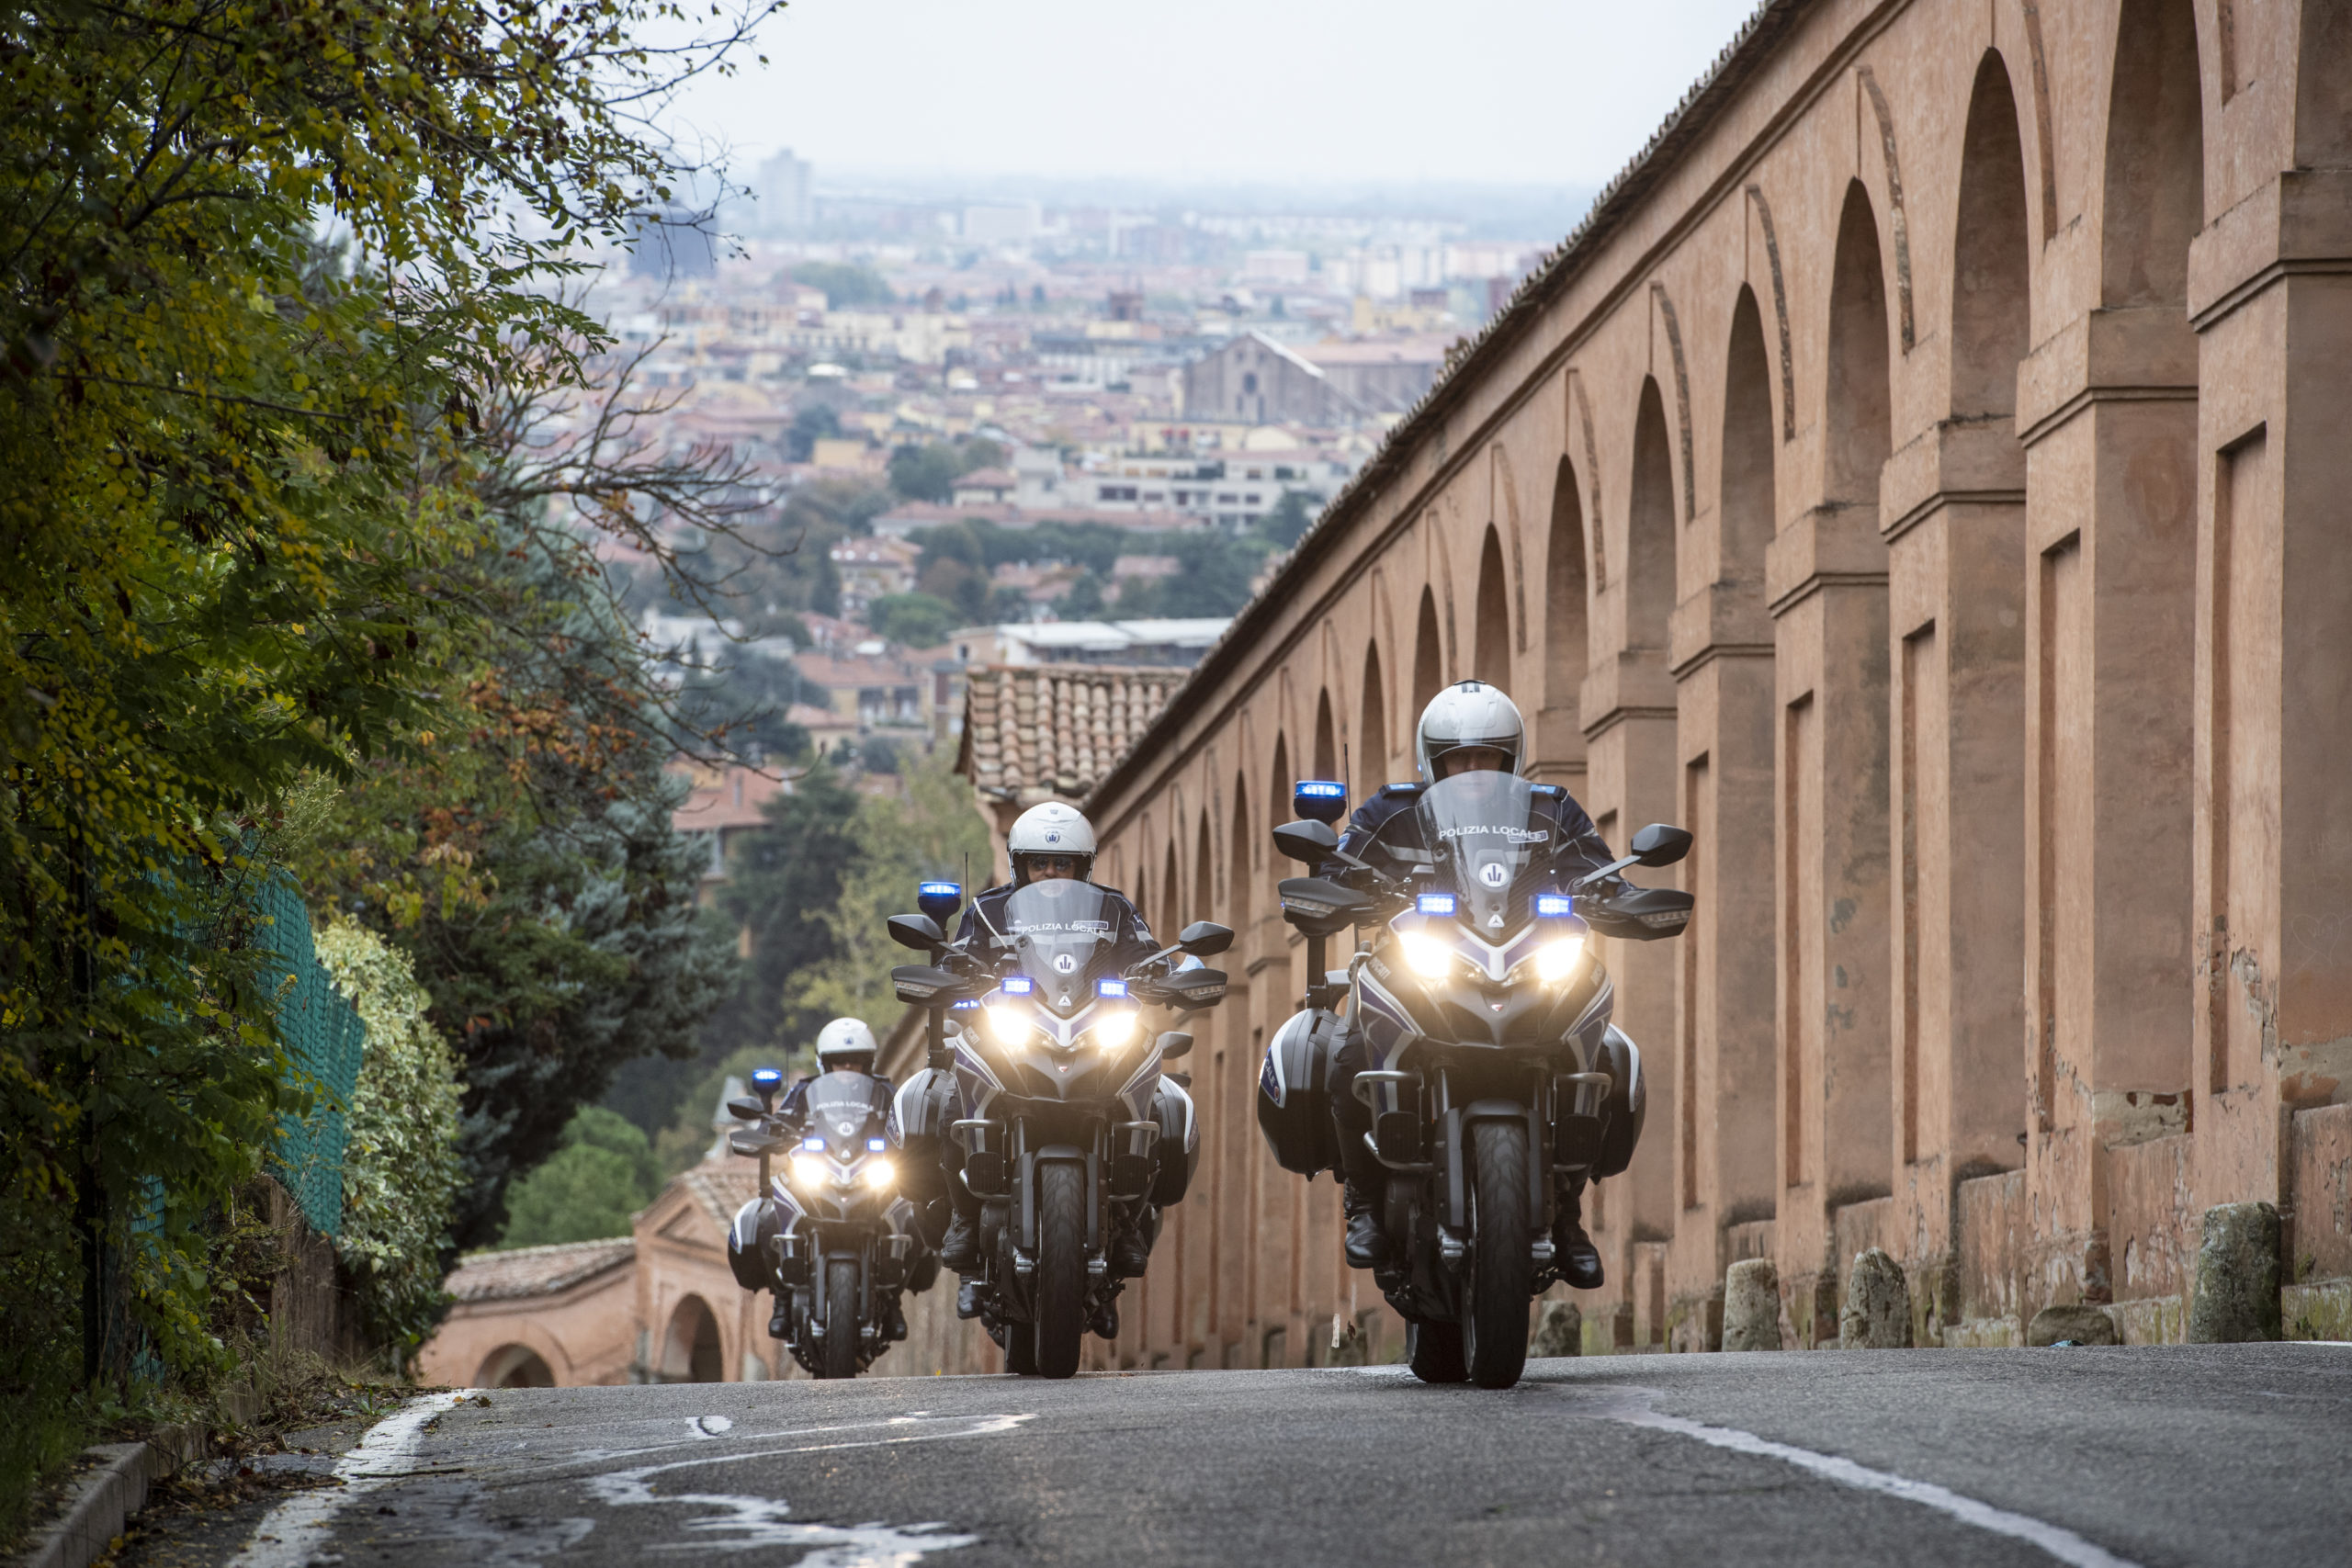 Ducati Multistrada, 25 for the Bologna Local Police